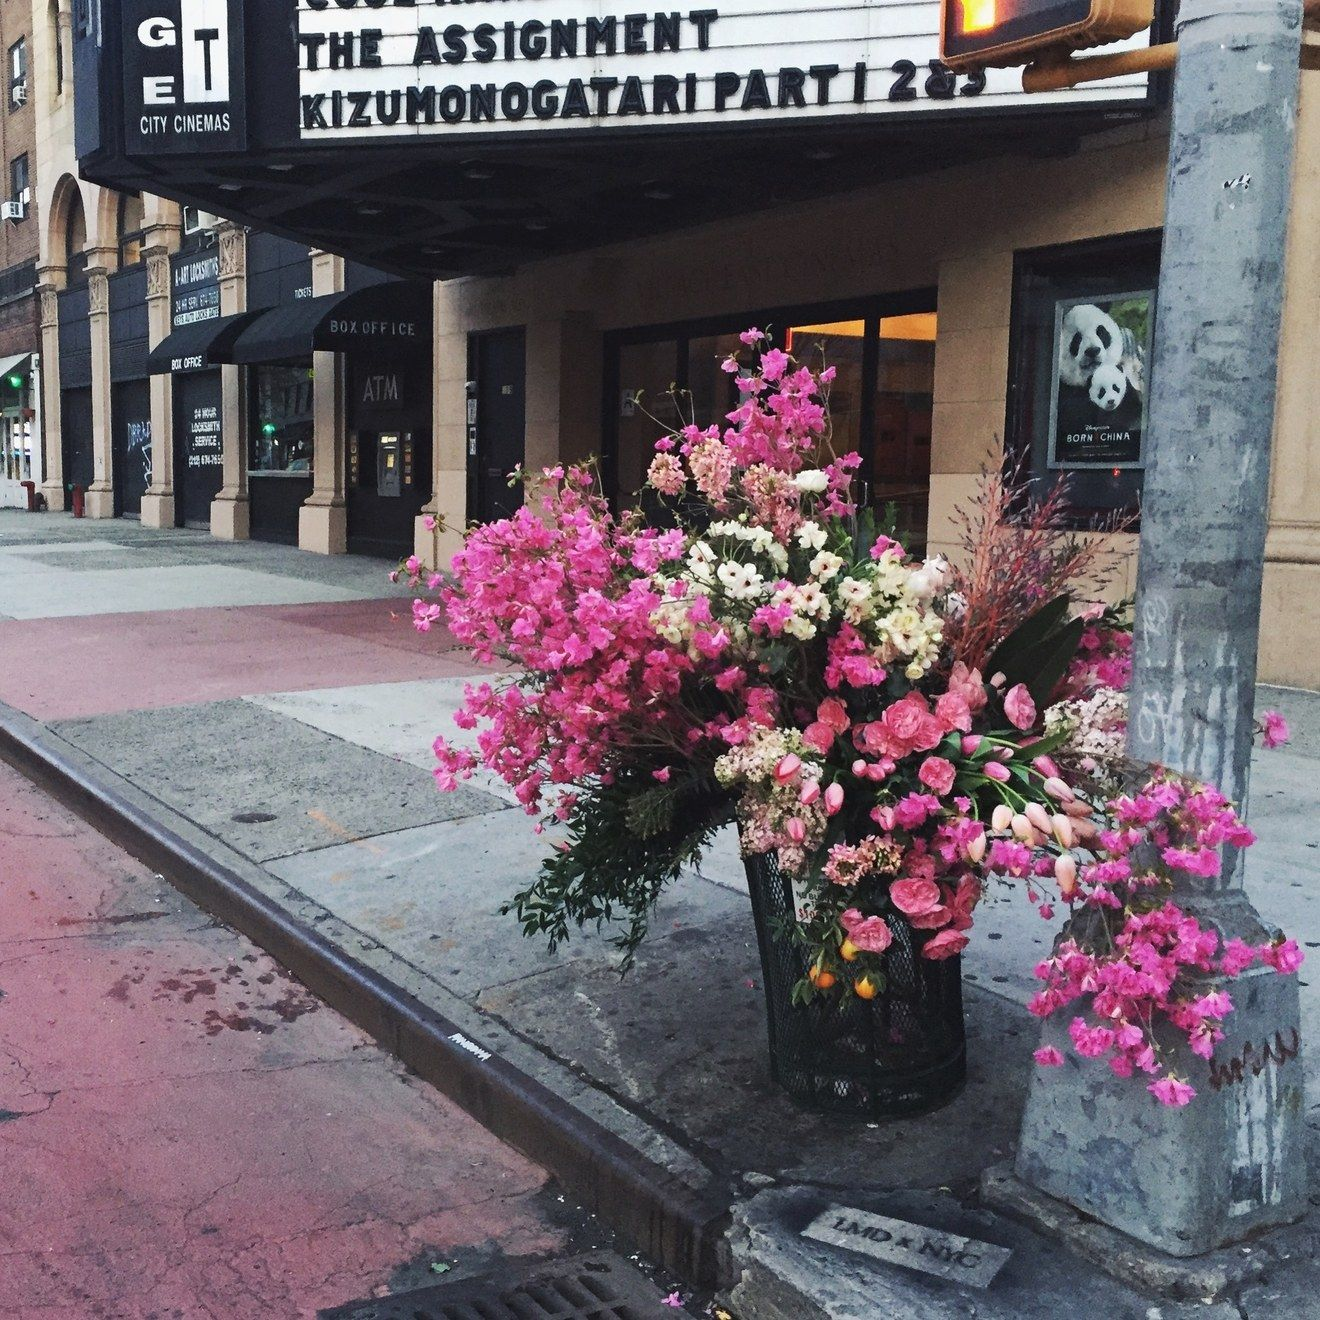 Lewis Miller Has Become New York Citys Flower Bandit The Flower - Artist turns nyc trash cans into giant flower filled vases